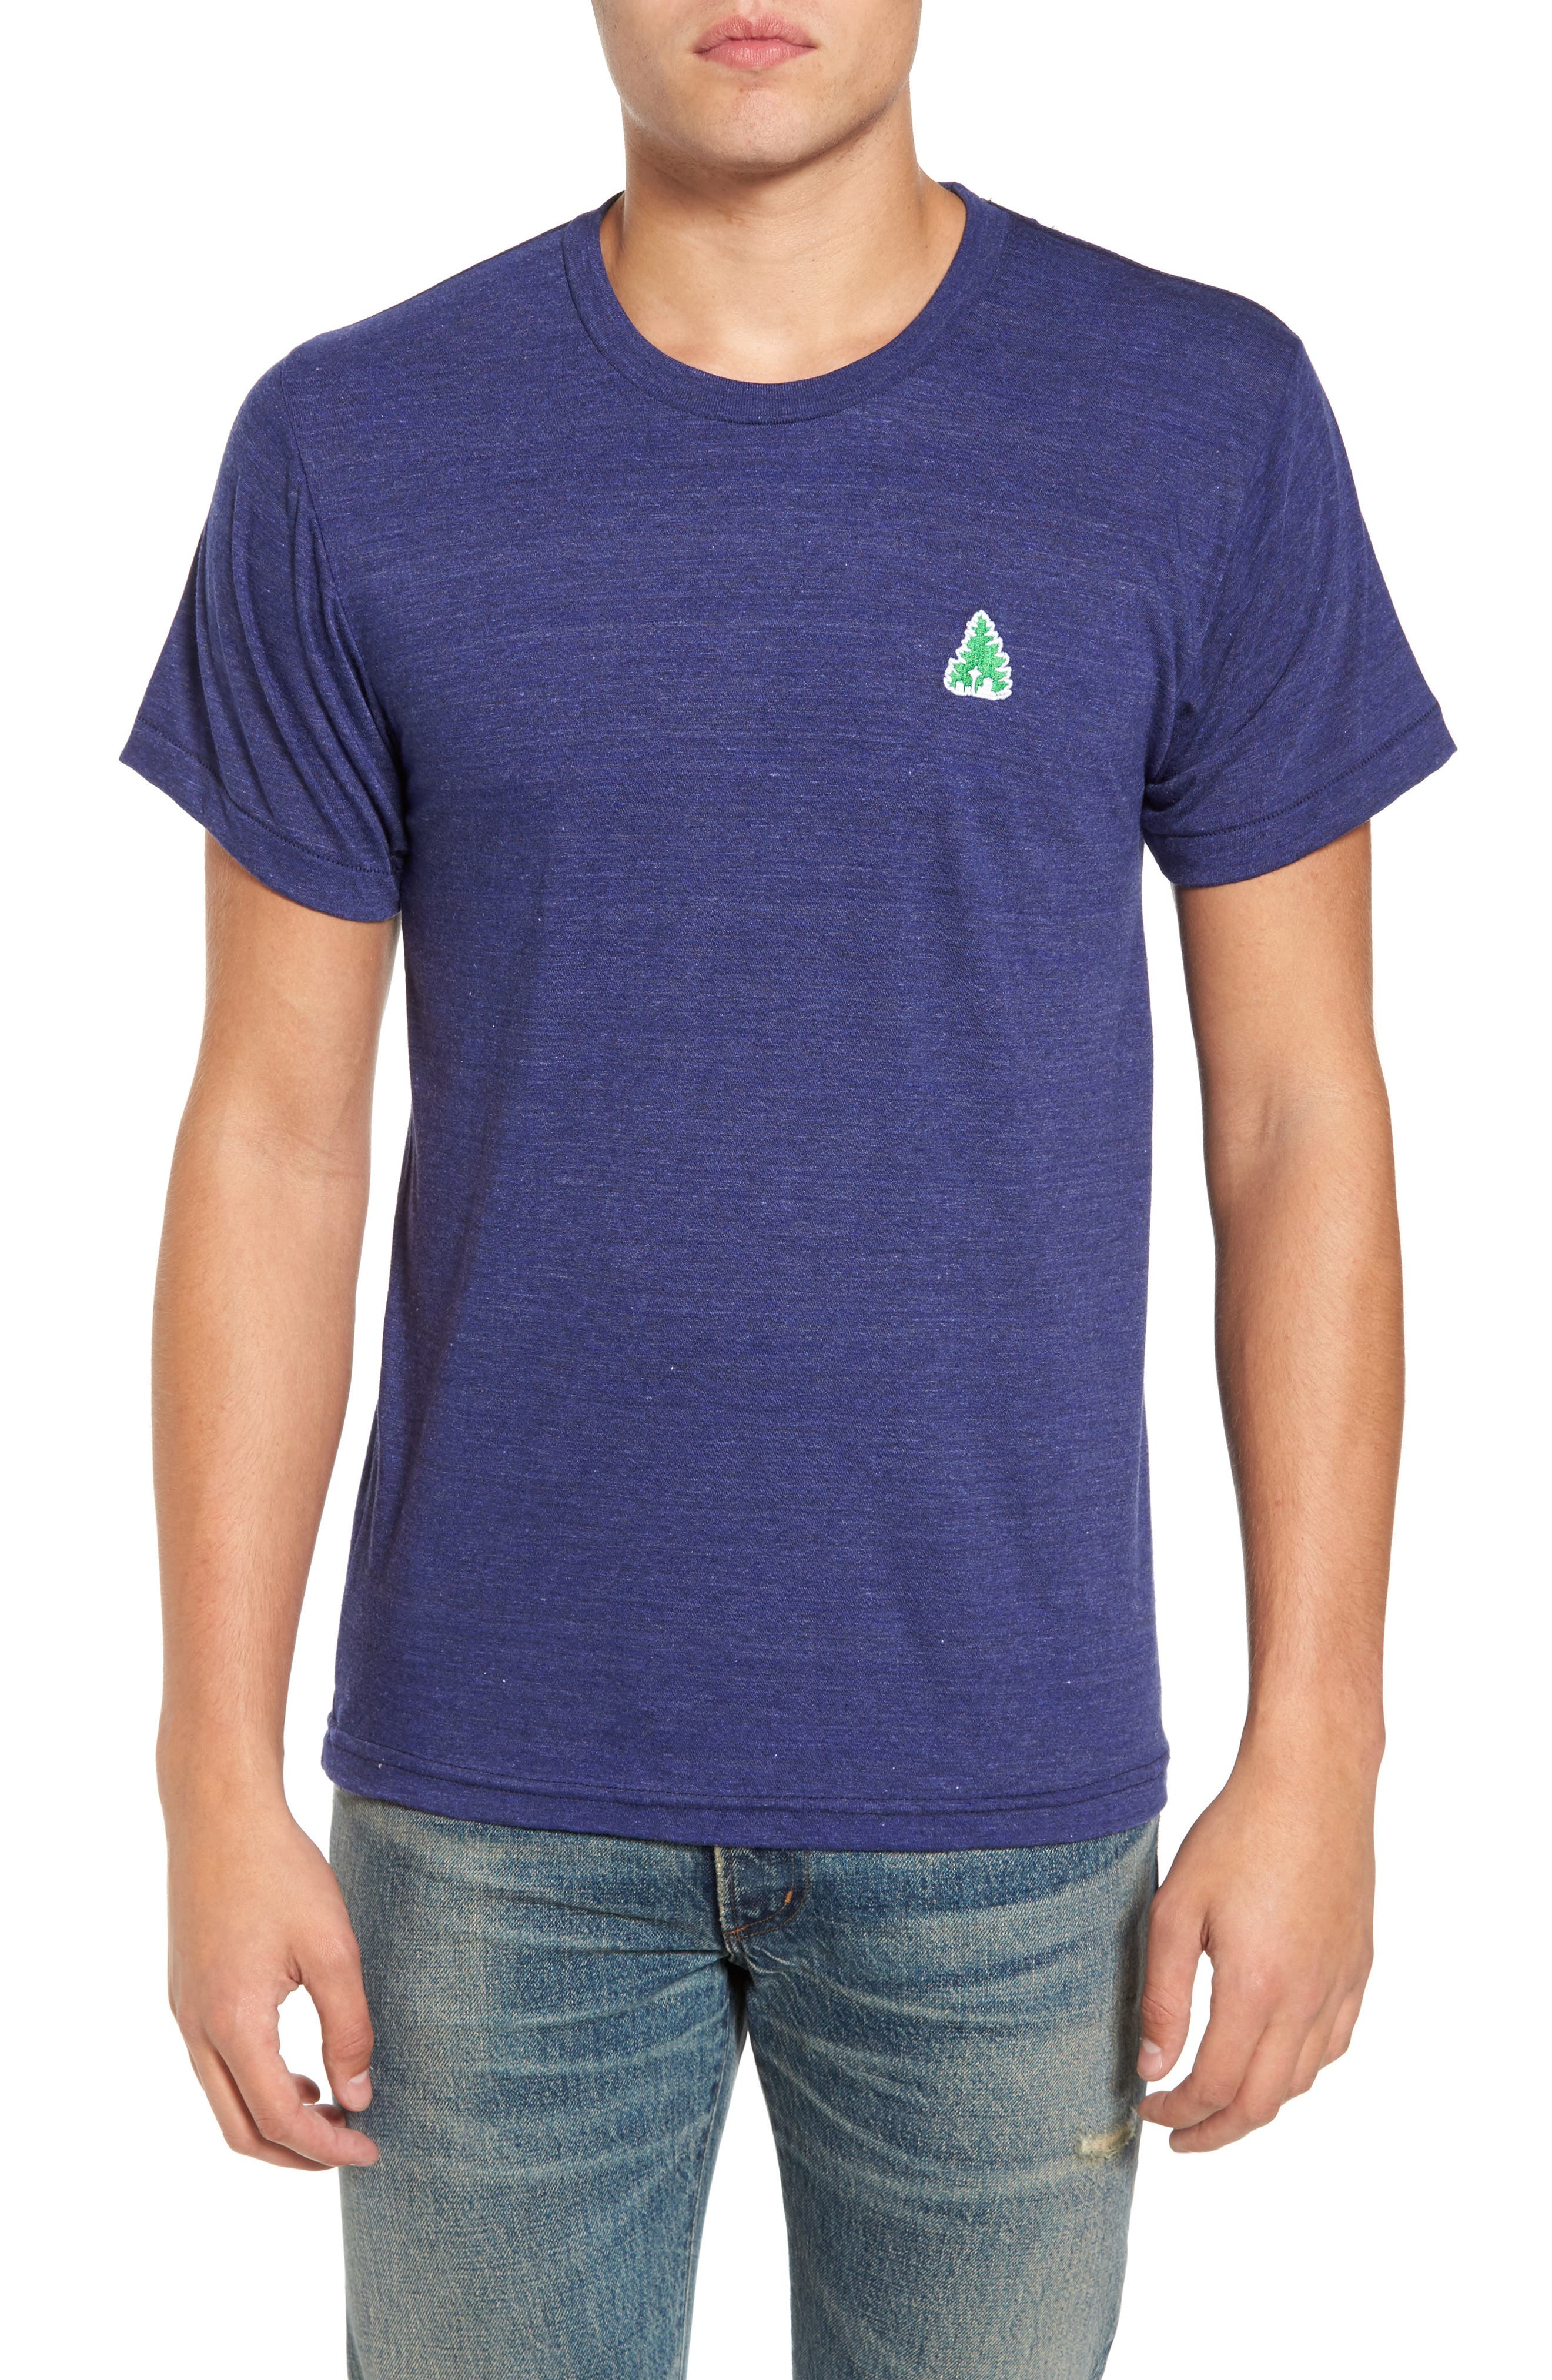 Alternate Image 1 Selected - Casual Industrees Johnny Tree Embroidered T-Shirt